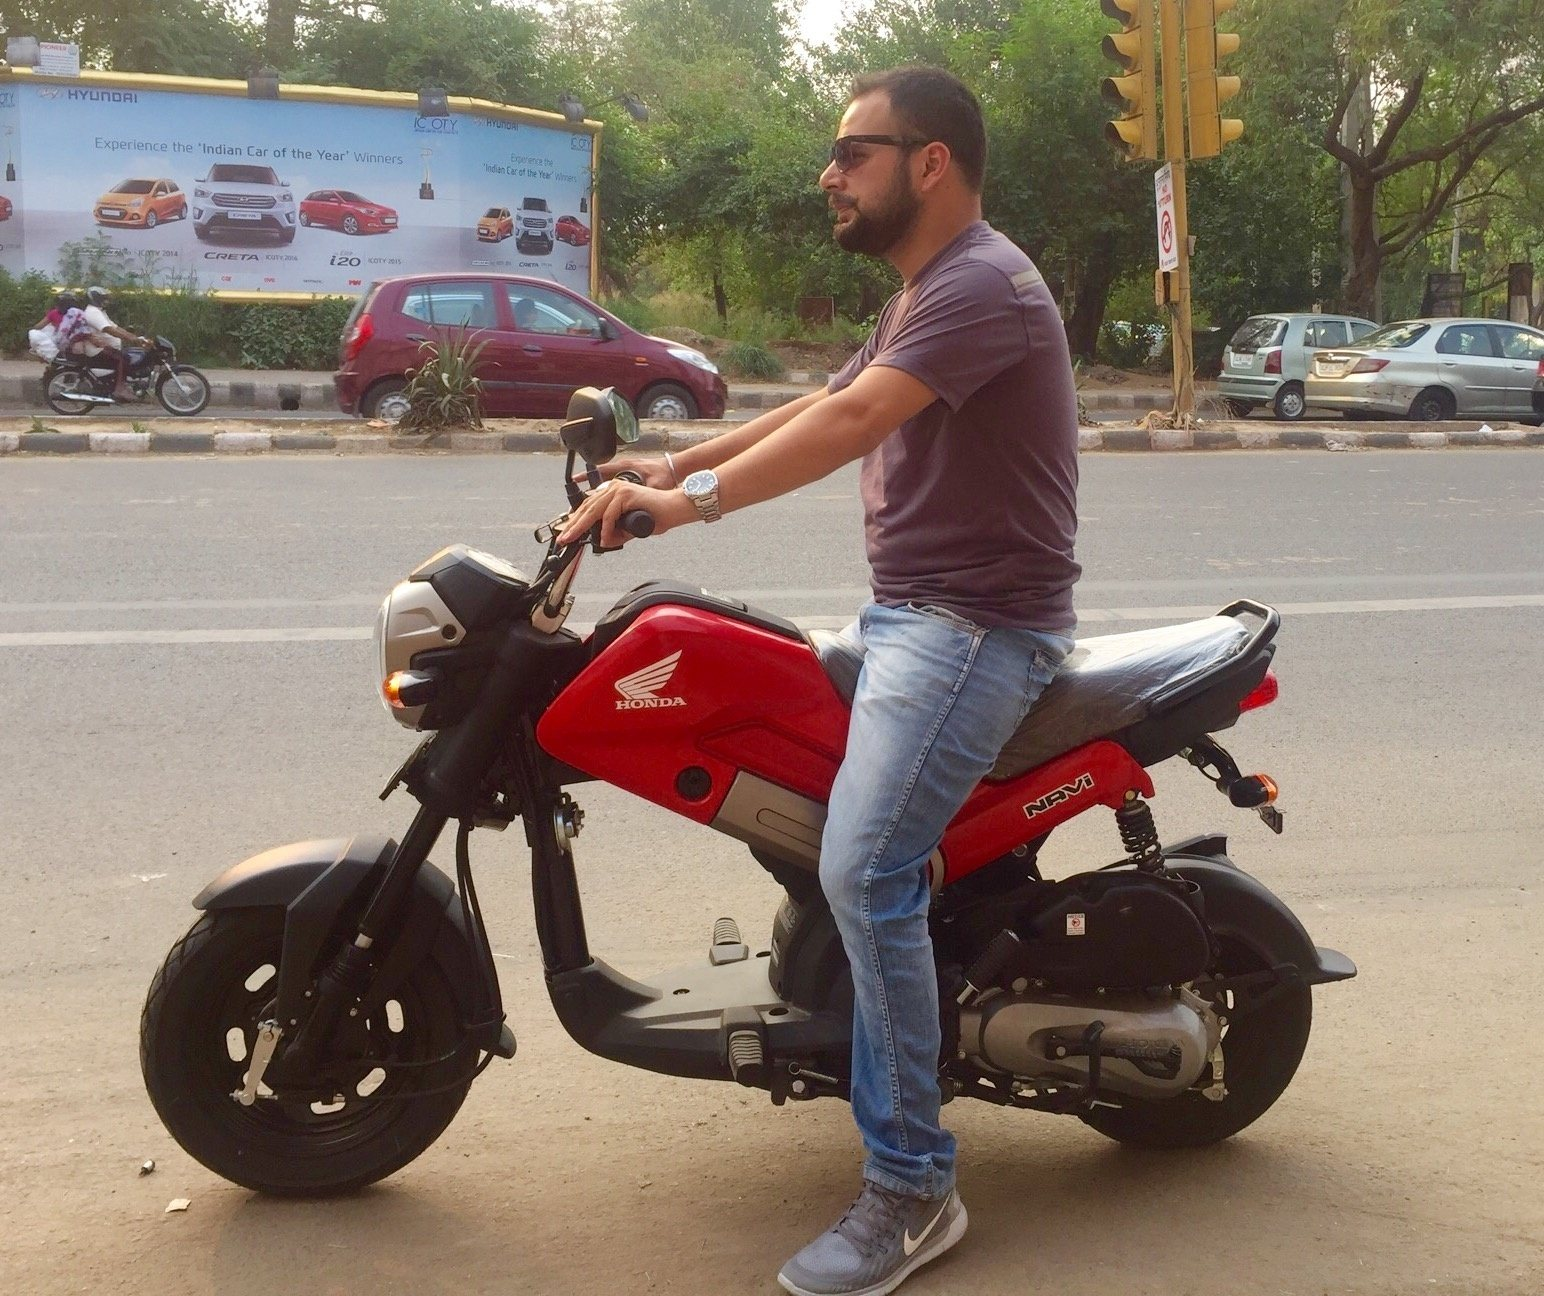 Will People Buy Bikes Like Honda Navi In India Quora Front View For Money Looking Easy Commute Distance Less Than 20kms To And Fro Housebike Fir Groceries Veggies Bike Till Park Back